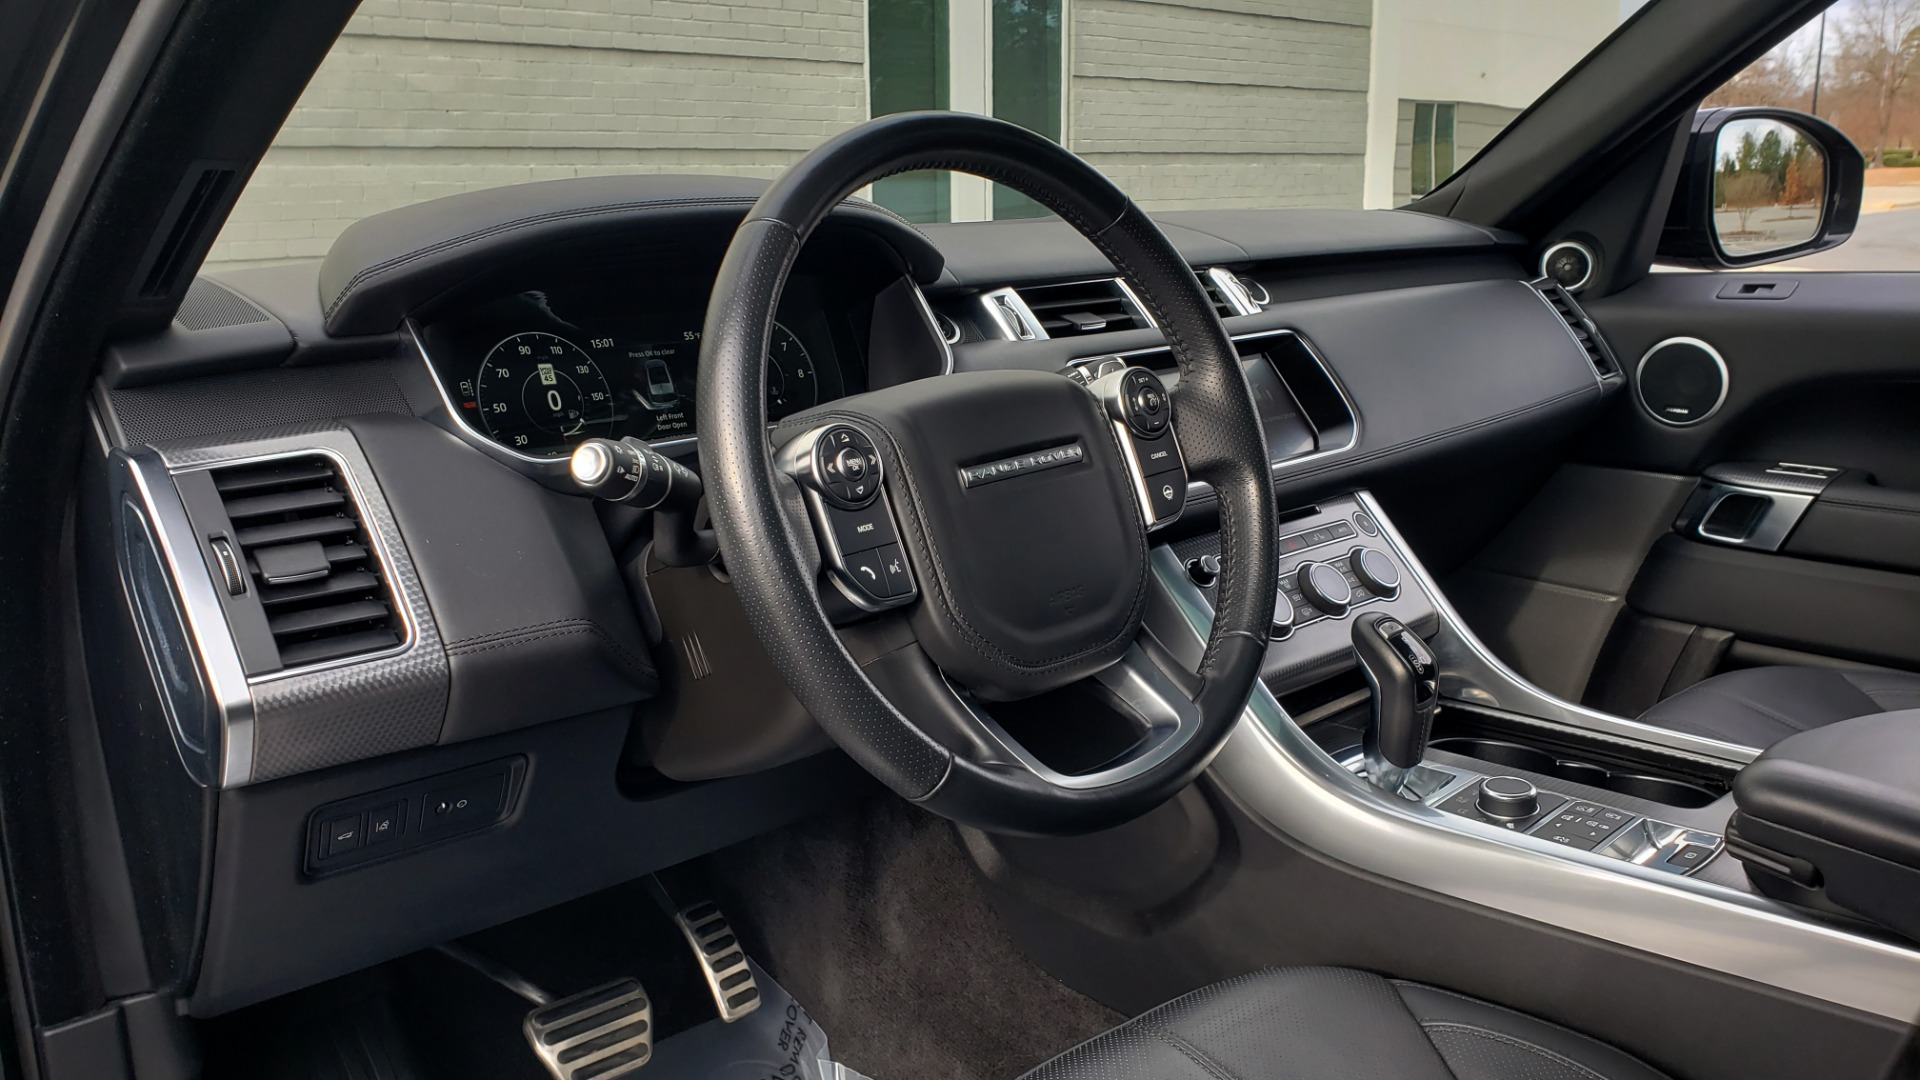 Used 2017 Land Rover RANGE ROVER SPORT HSE DYNAMIC / SC V6 / NAV / MERIDIAN / PANO-ROOF / REARVIEW for sale Sold at Formula Imports in Charlotte NC 28227 140